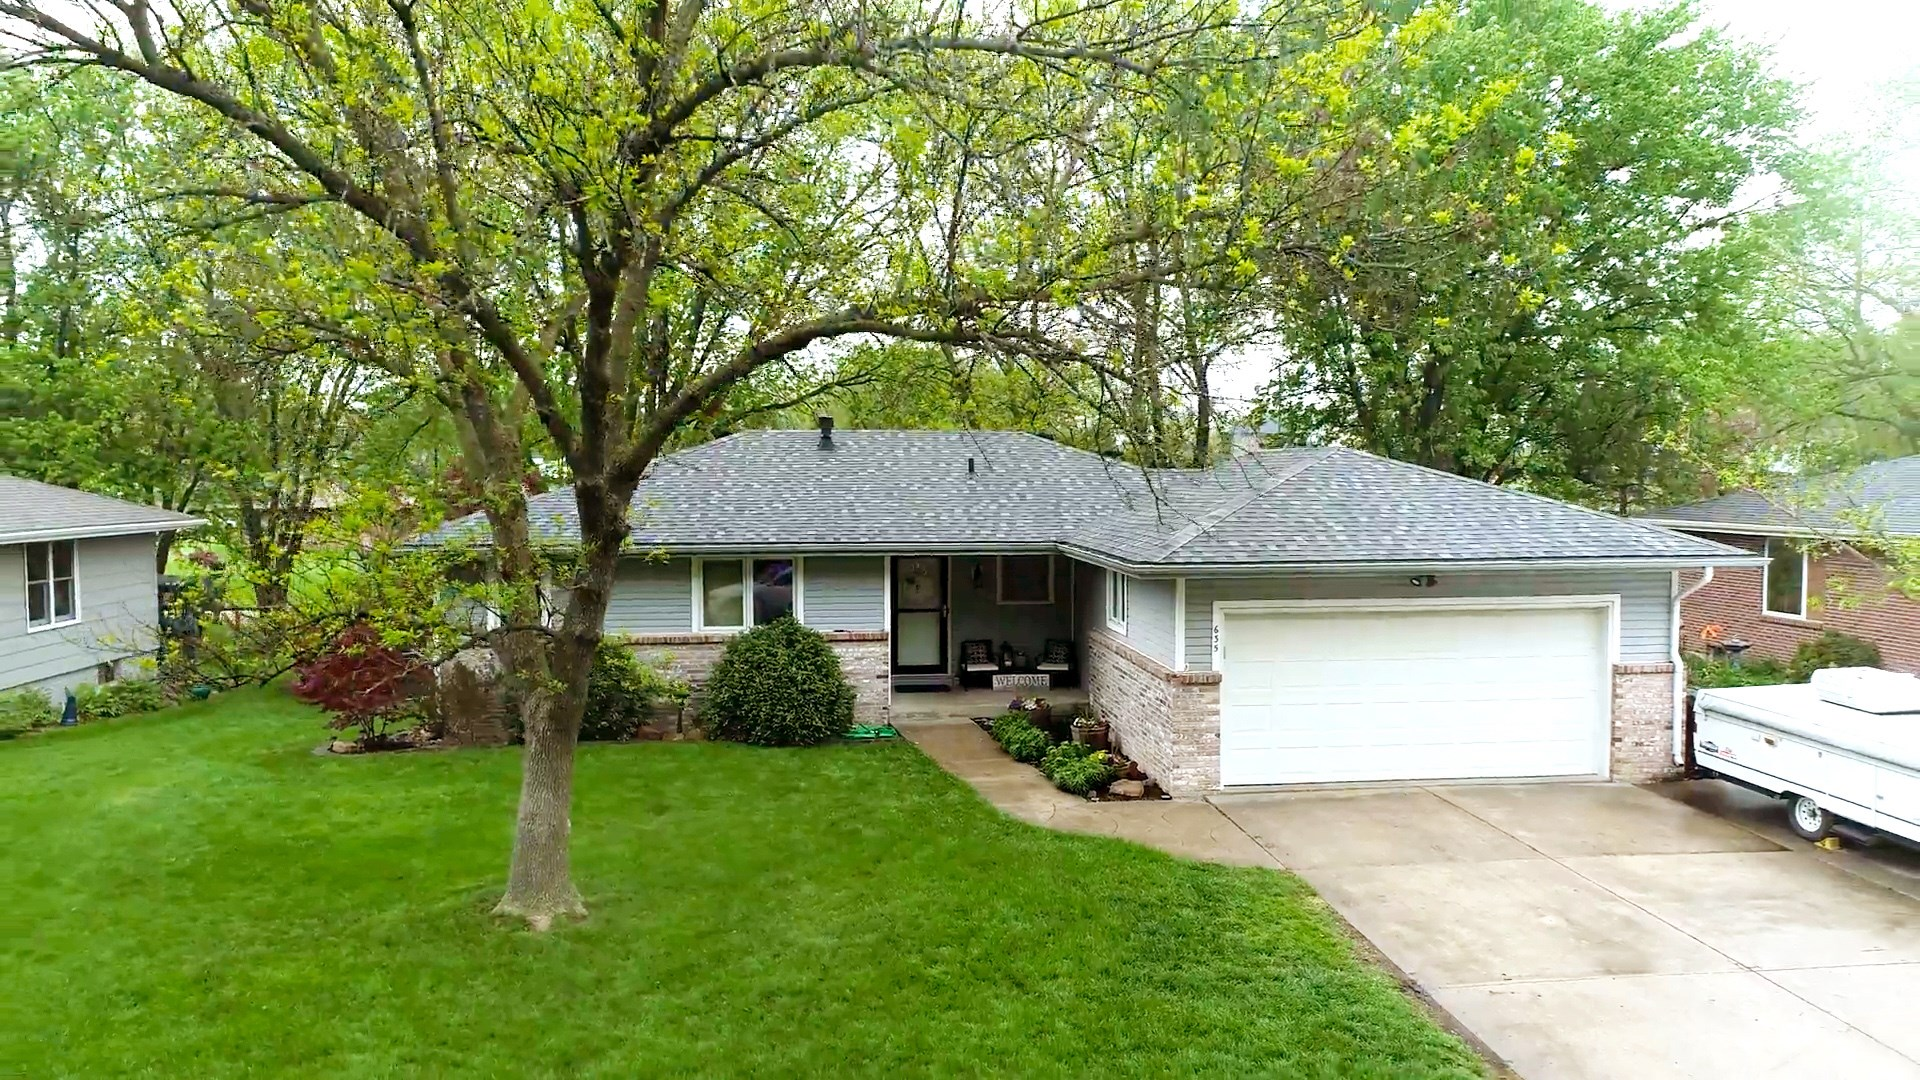 3 bedroom ranch style home in Hickman.